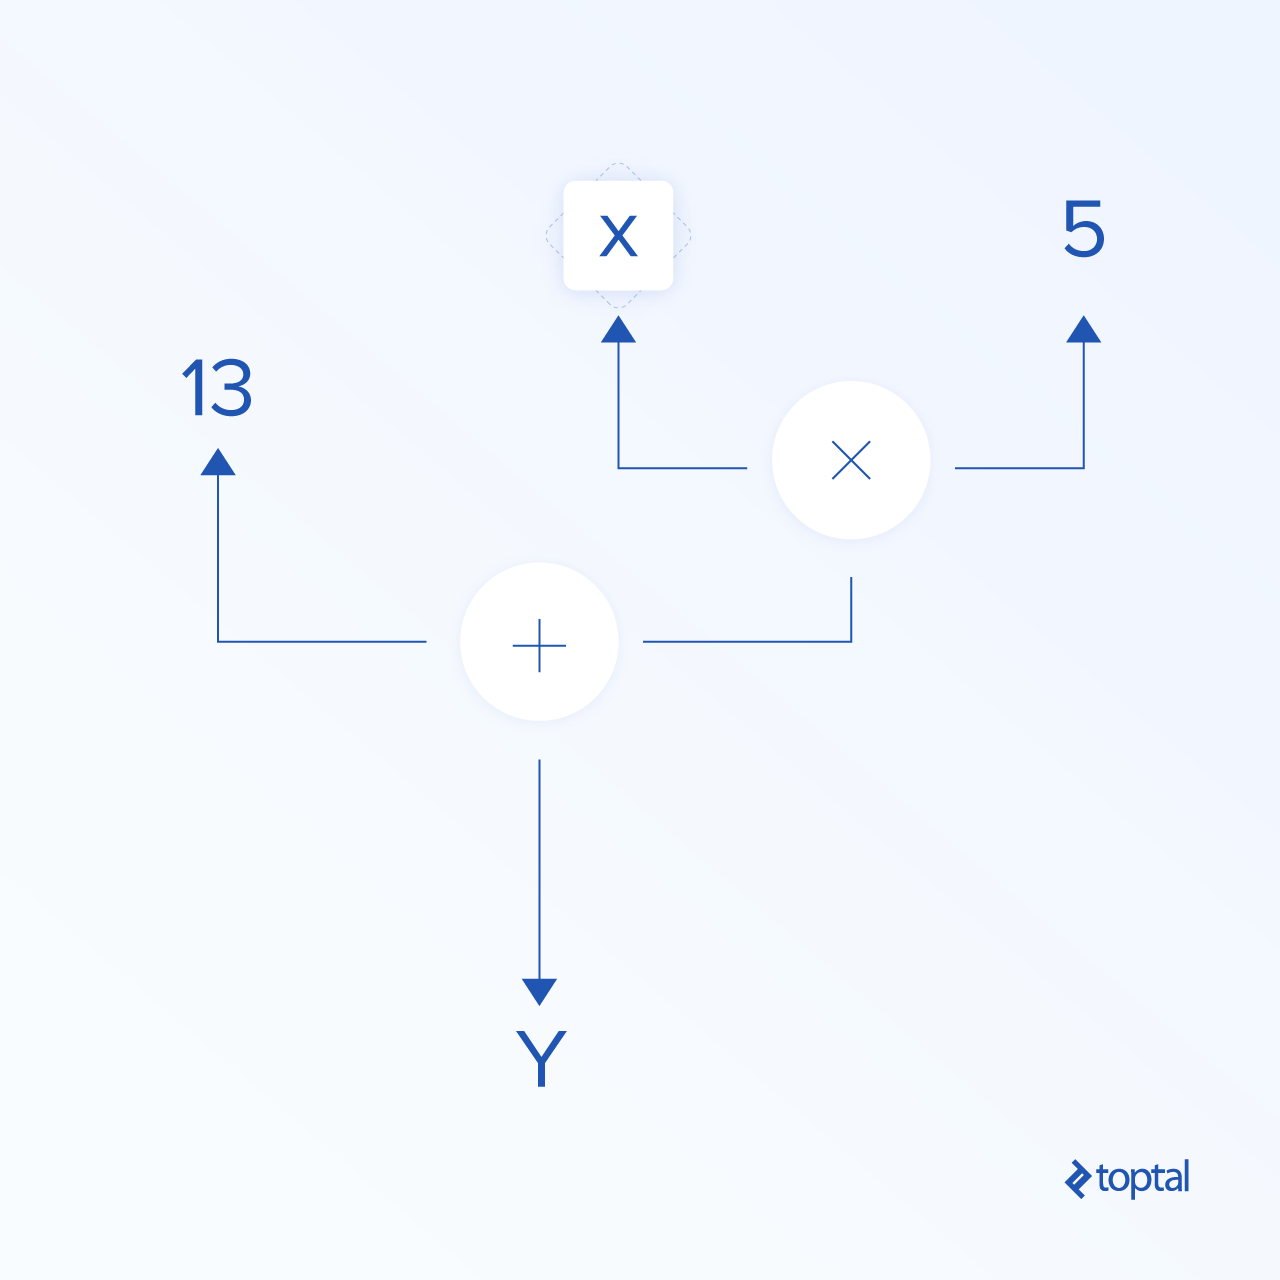 A simple data flow graph